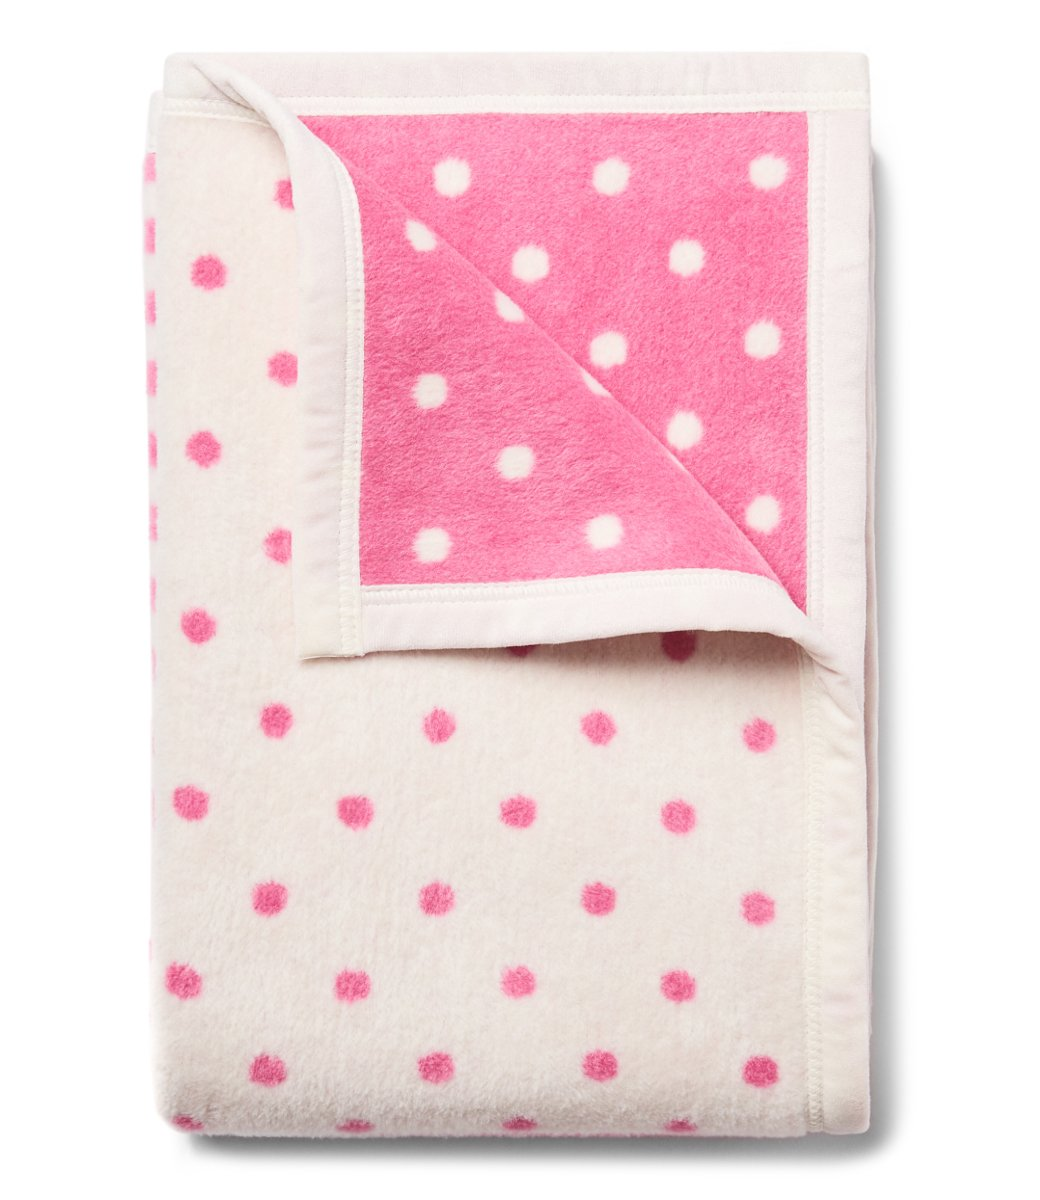 Pretty in Pink Midi Blanket